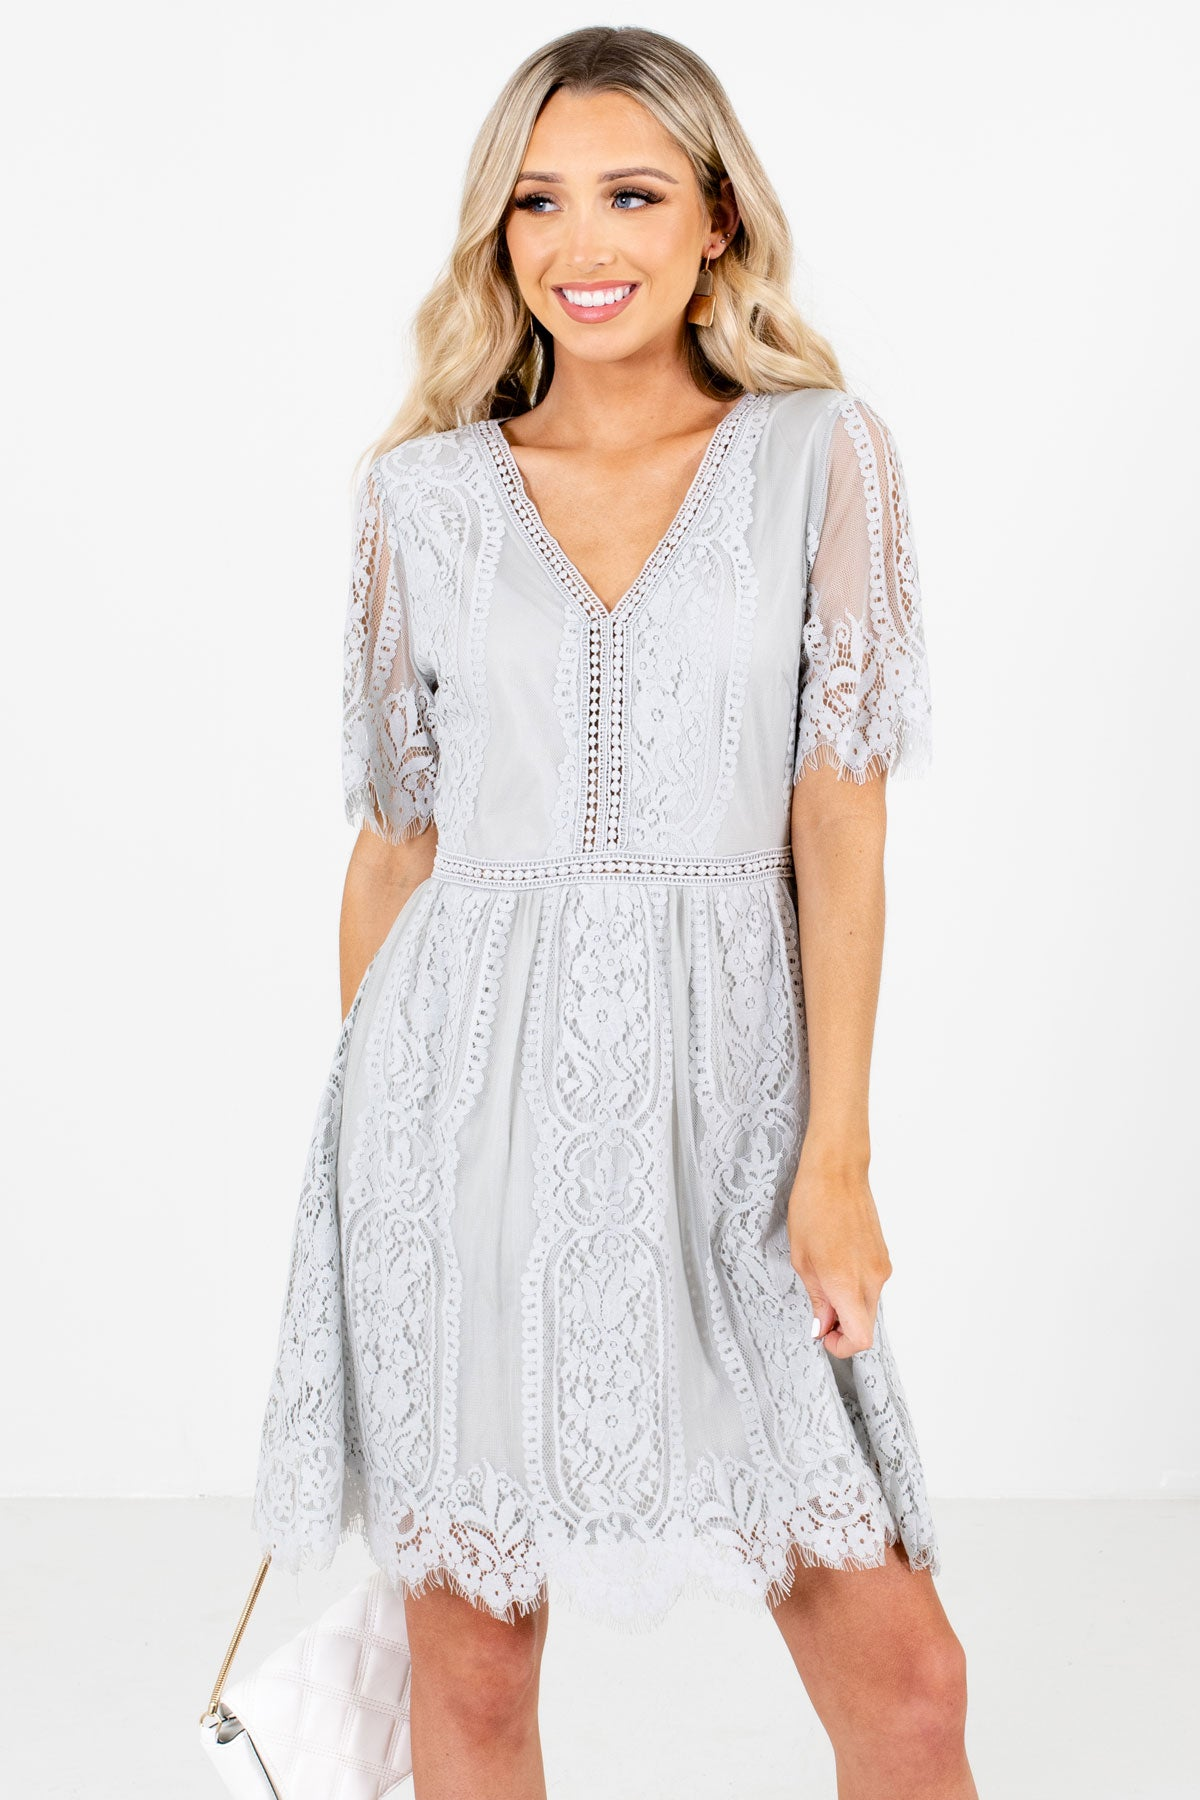 Light Gray High-Quality Lace Material Boutique Mini Dresses for Women